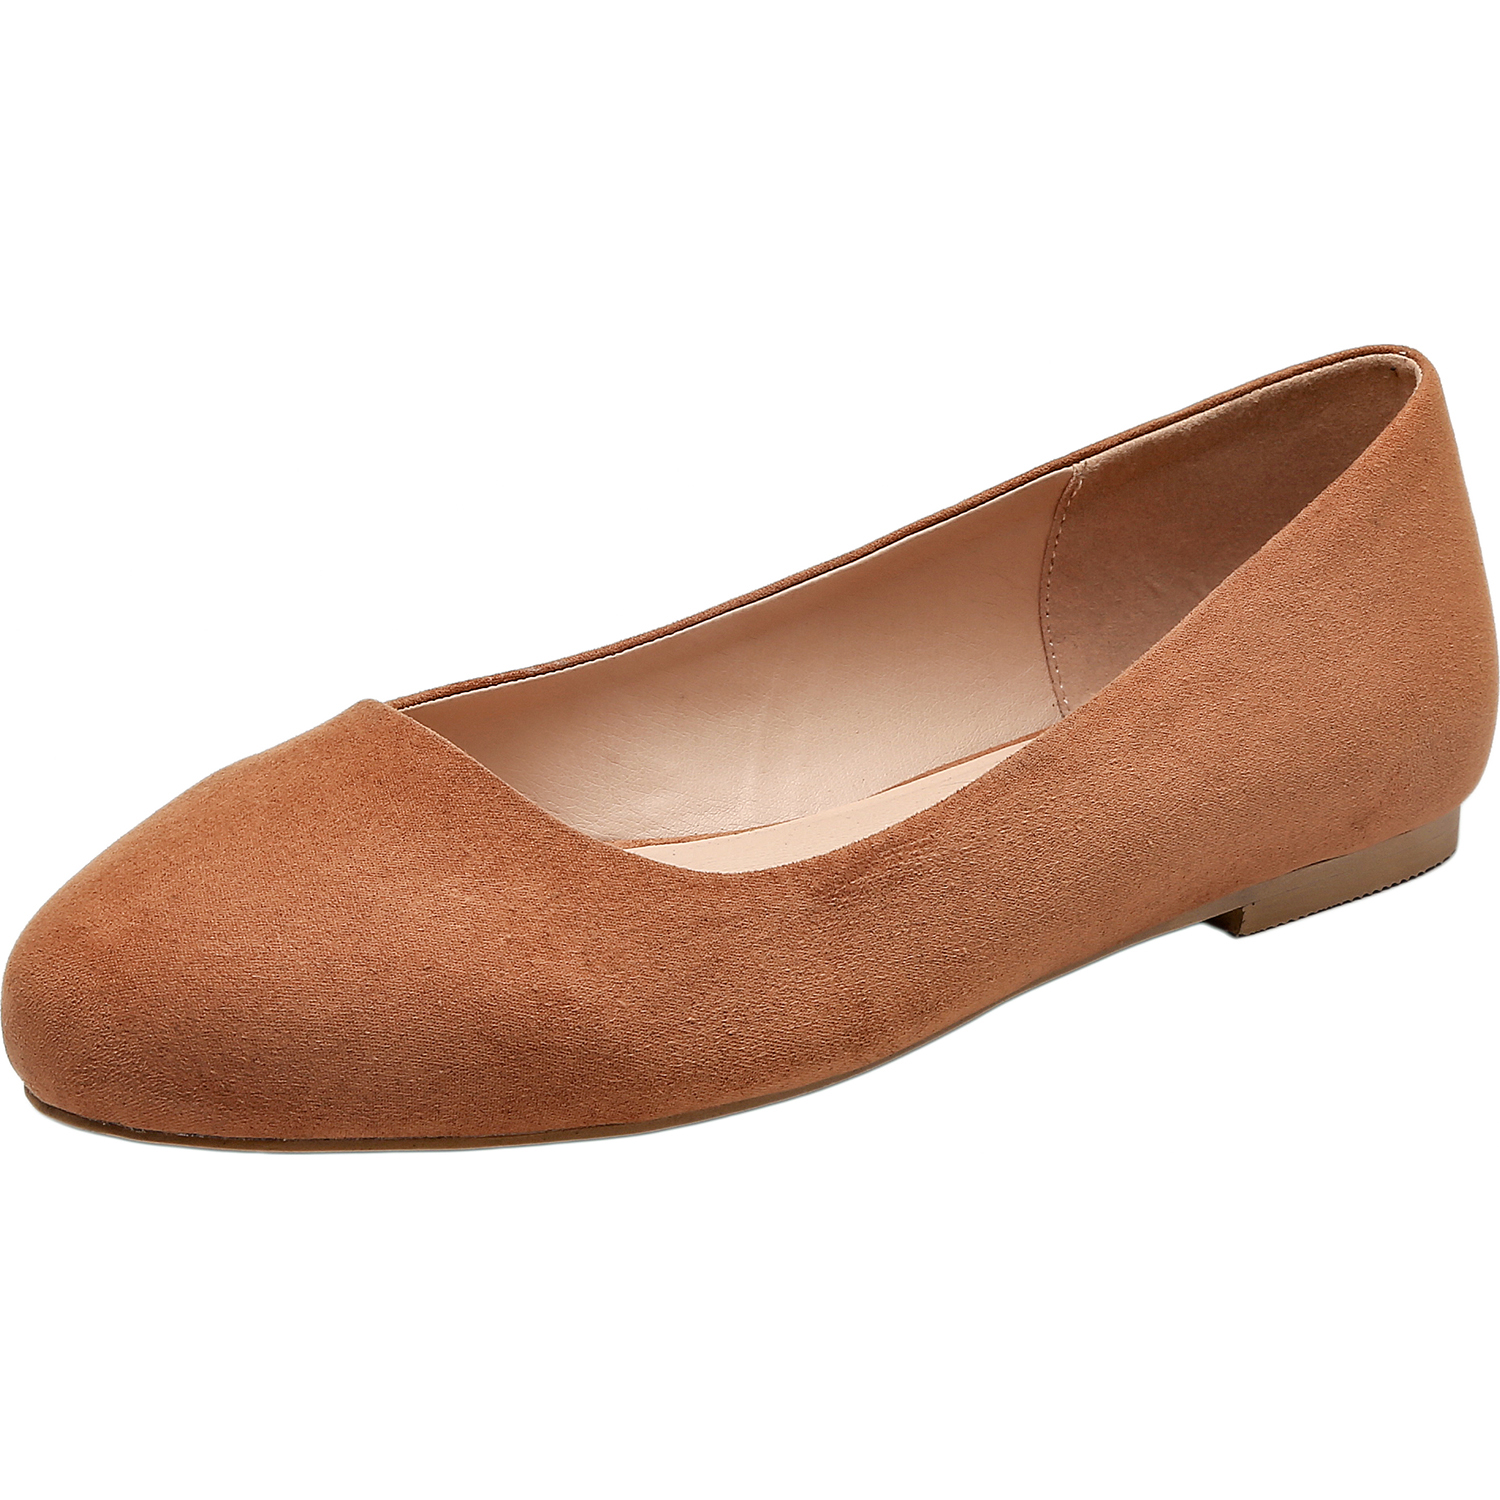 ab8897d017a5 US  29.99 - Aukusor Women s Wide Width Flat Shoes - Comfortable Classic  Pointy Toe Slip On Ballet Flat - www.luoika-us.com